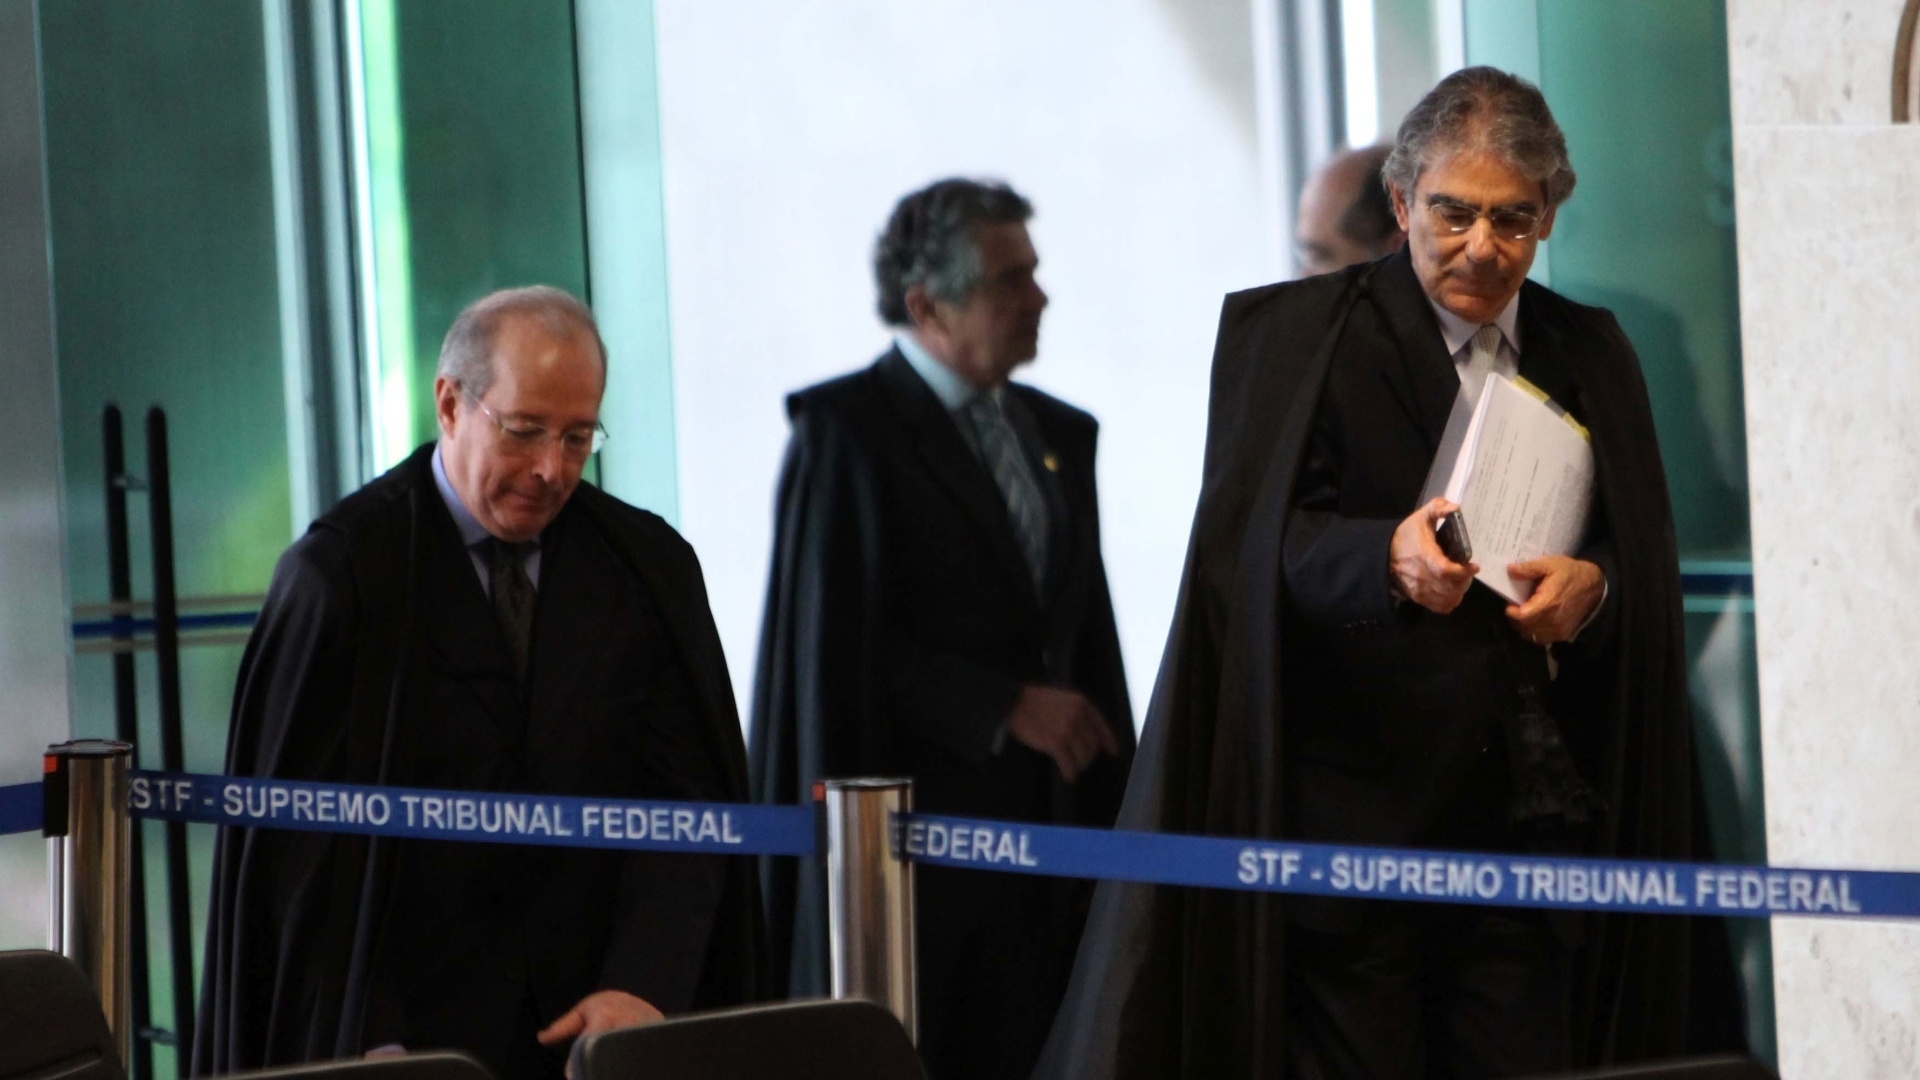 7.nov.2012 - O presidente do Supremo Tribunal Federal, o ministro Ayres Britto ( dir.), e ministro Celso de Mello fazem a primeira entrada para sesso de julgamento do mensalo no Supremo Tribunal Federal. Depois de quase duas semanas  de intervalo, o julgamento foi retomado com a concluso da votao das penas a serem aplicadas a Ramon Hollerbach, ex-scio do publicitrio Marcos Valrio